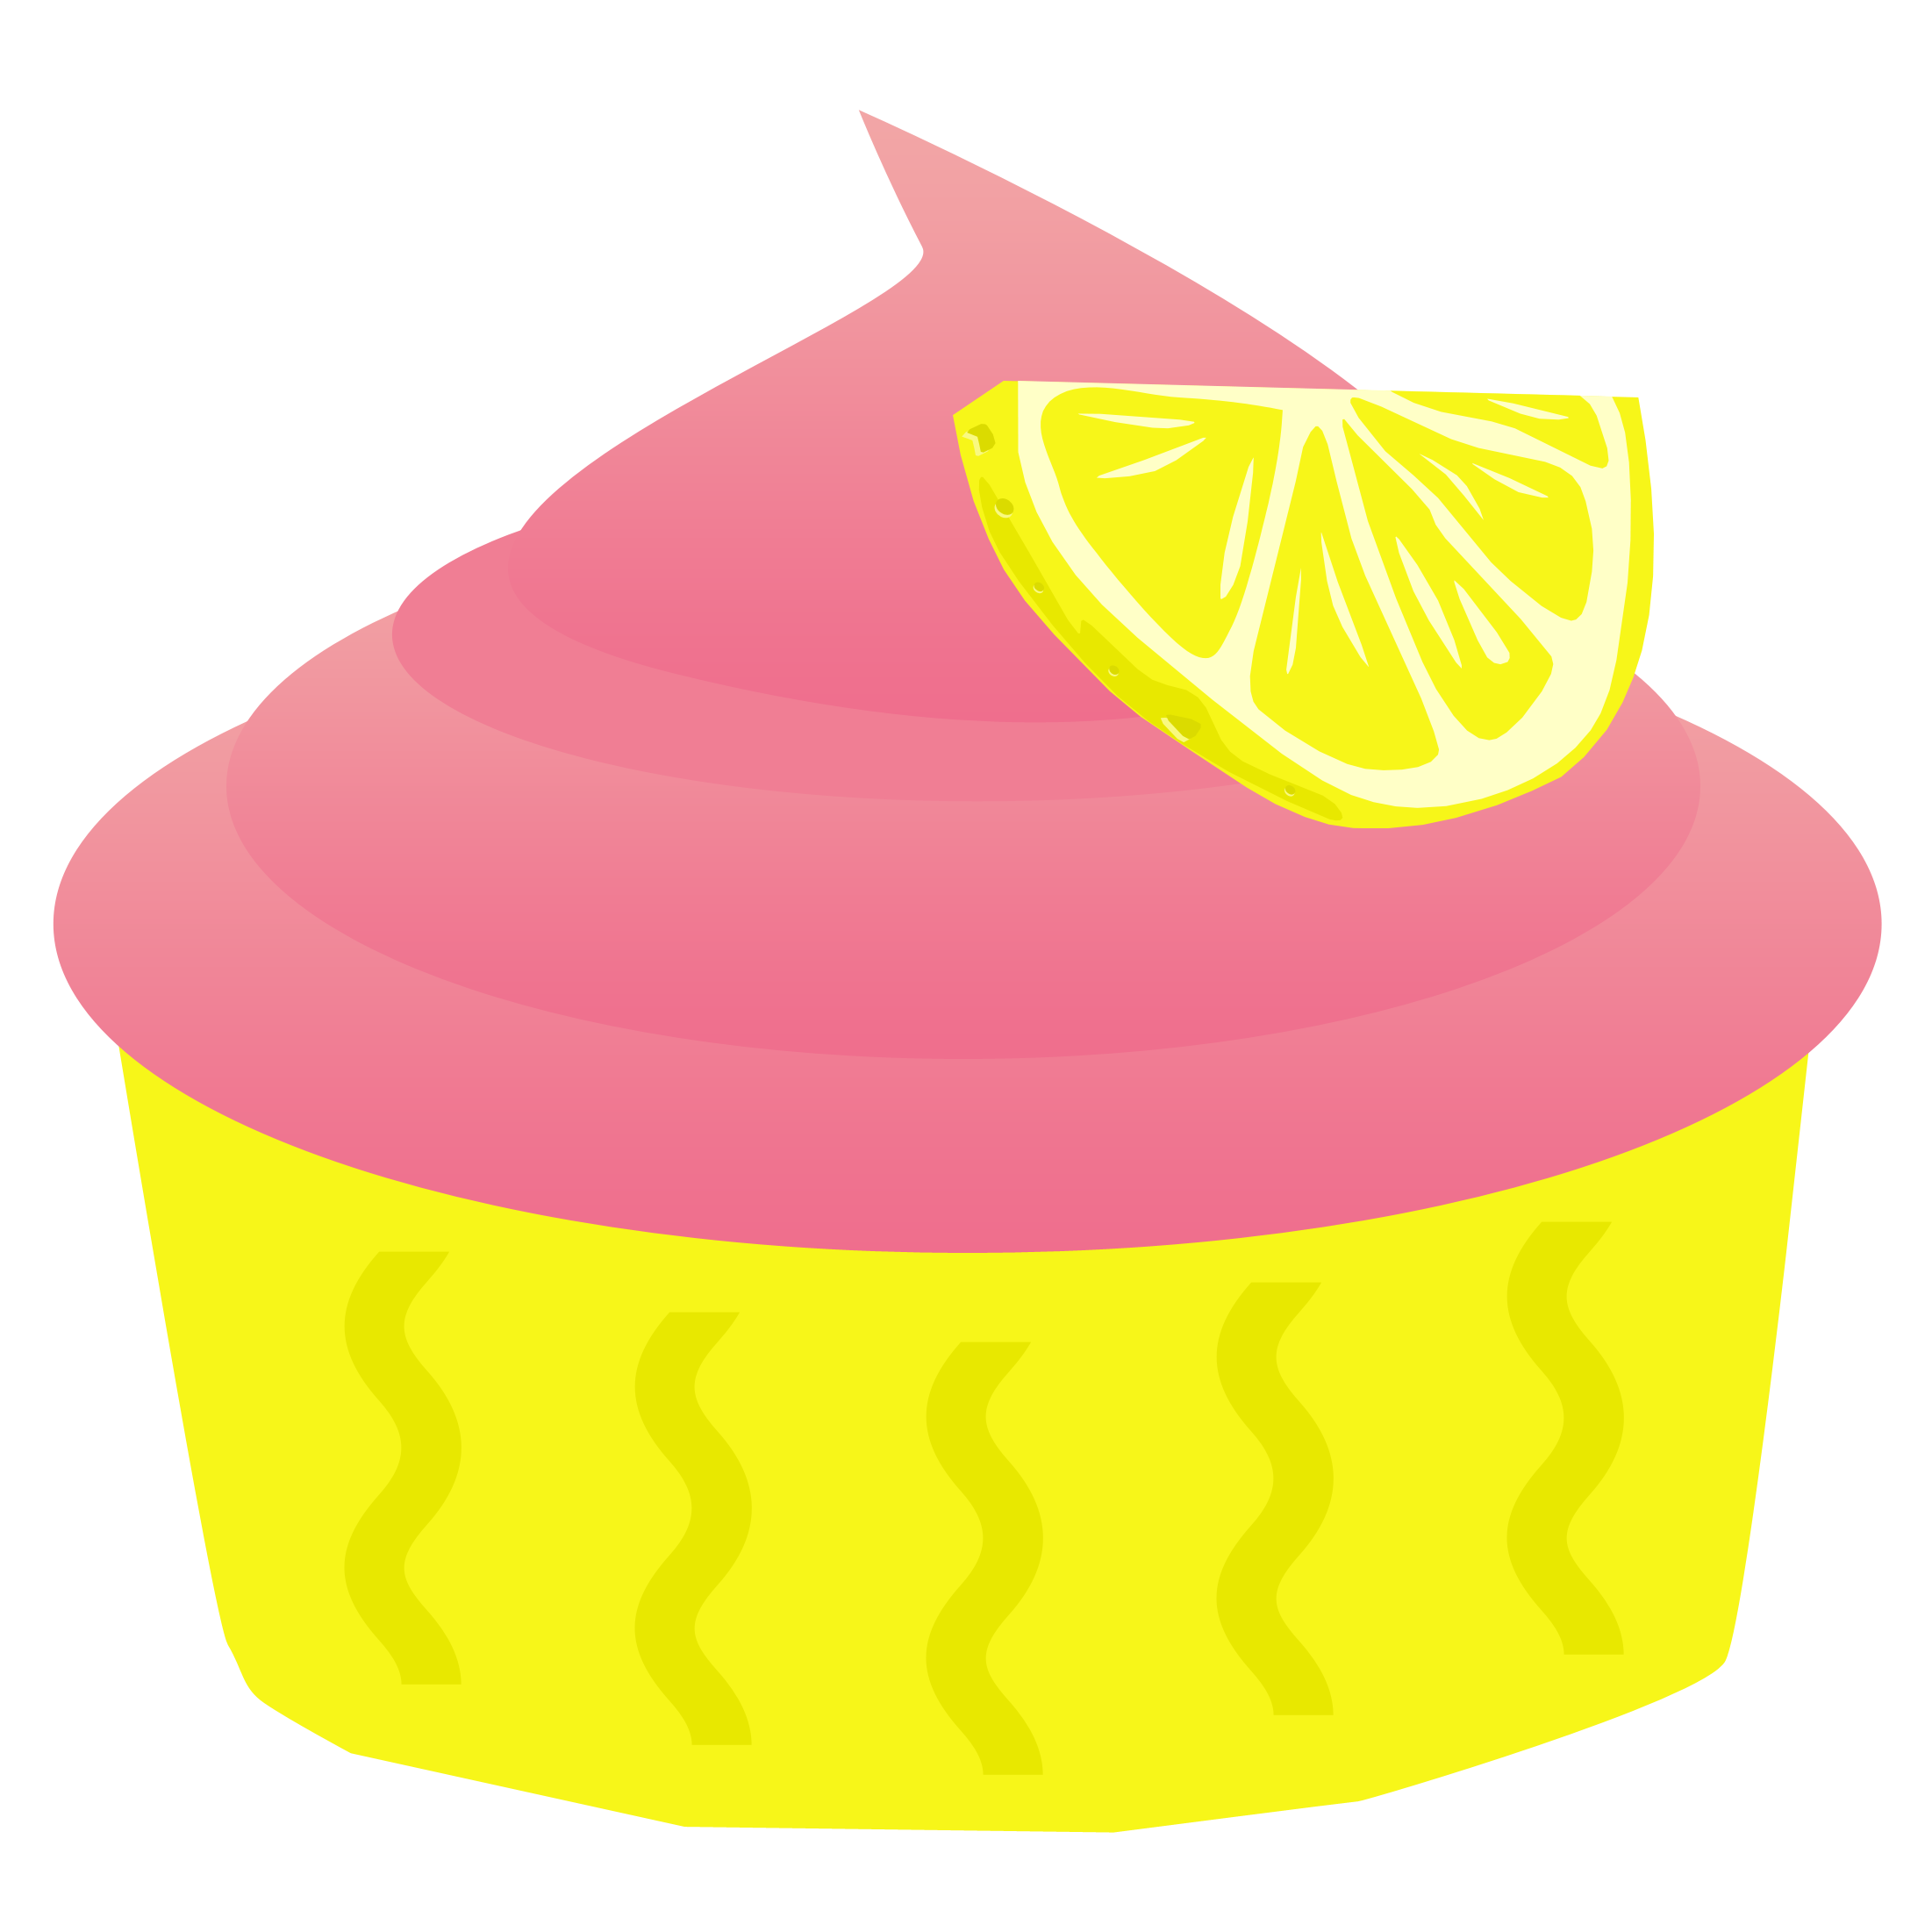 free cupcake clipart at getdrawings com free for personal use free rh getdrawings com